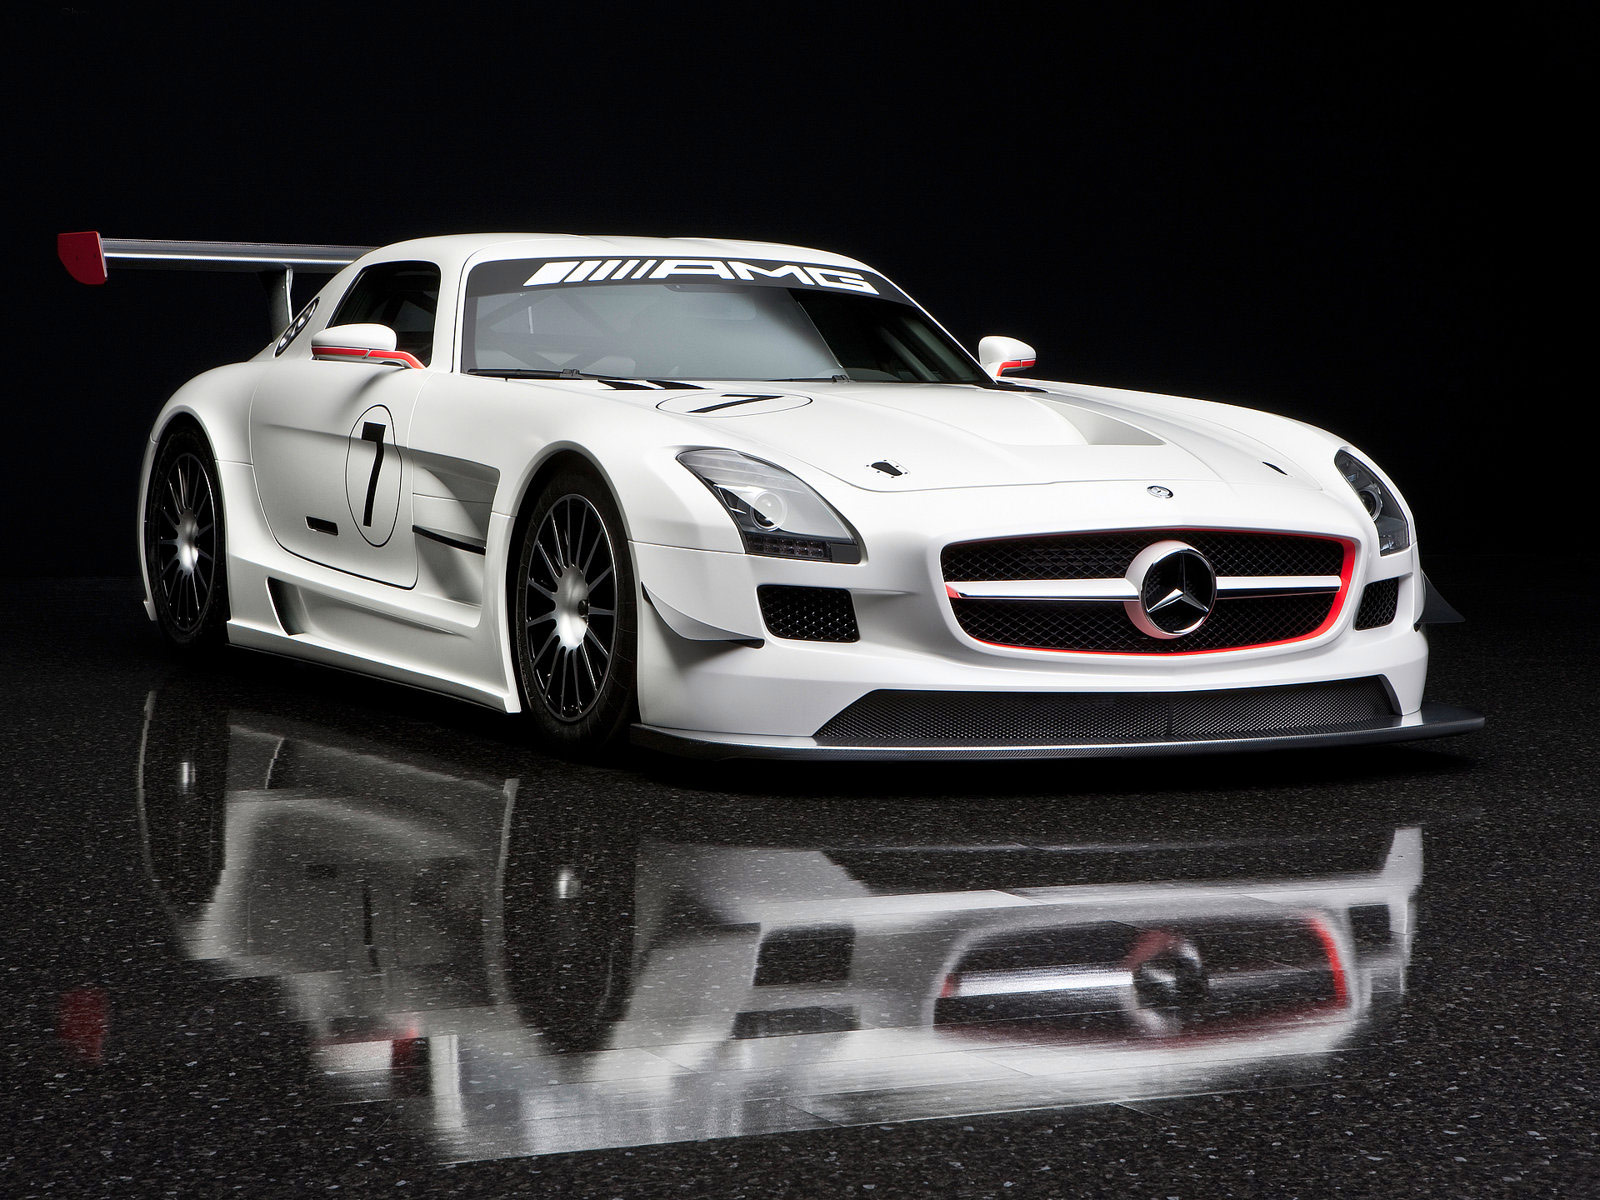 2011 mercedes benz sls amg gt3 car wallpaper for Mercedes benz gt3